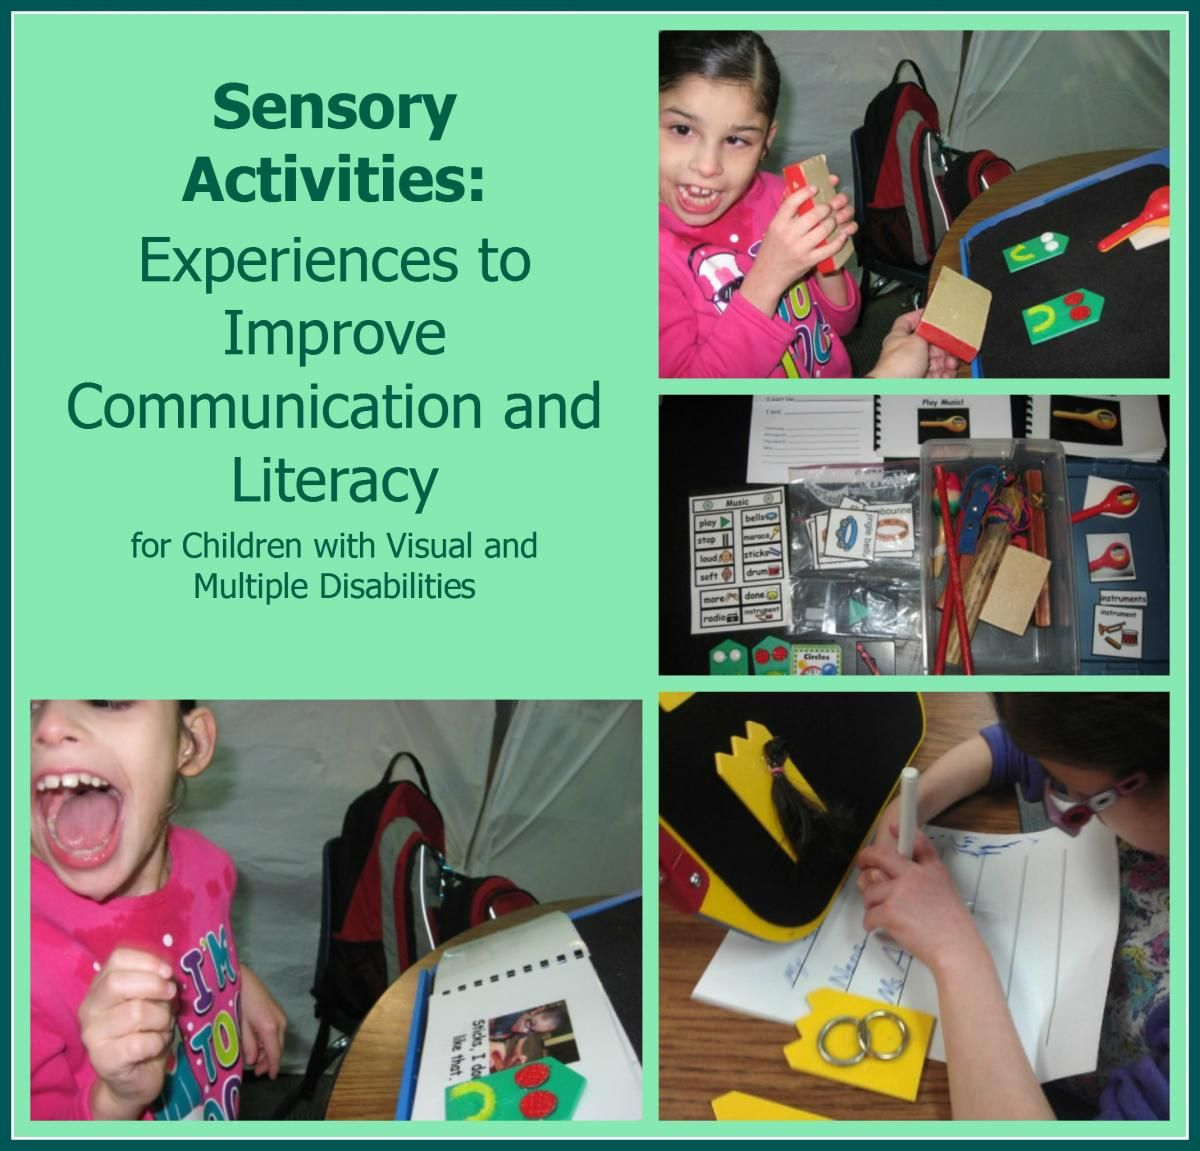 These Sensory Activities Help Children With Visual Impairments And Multiple Disabilities To